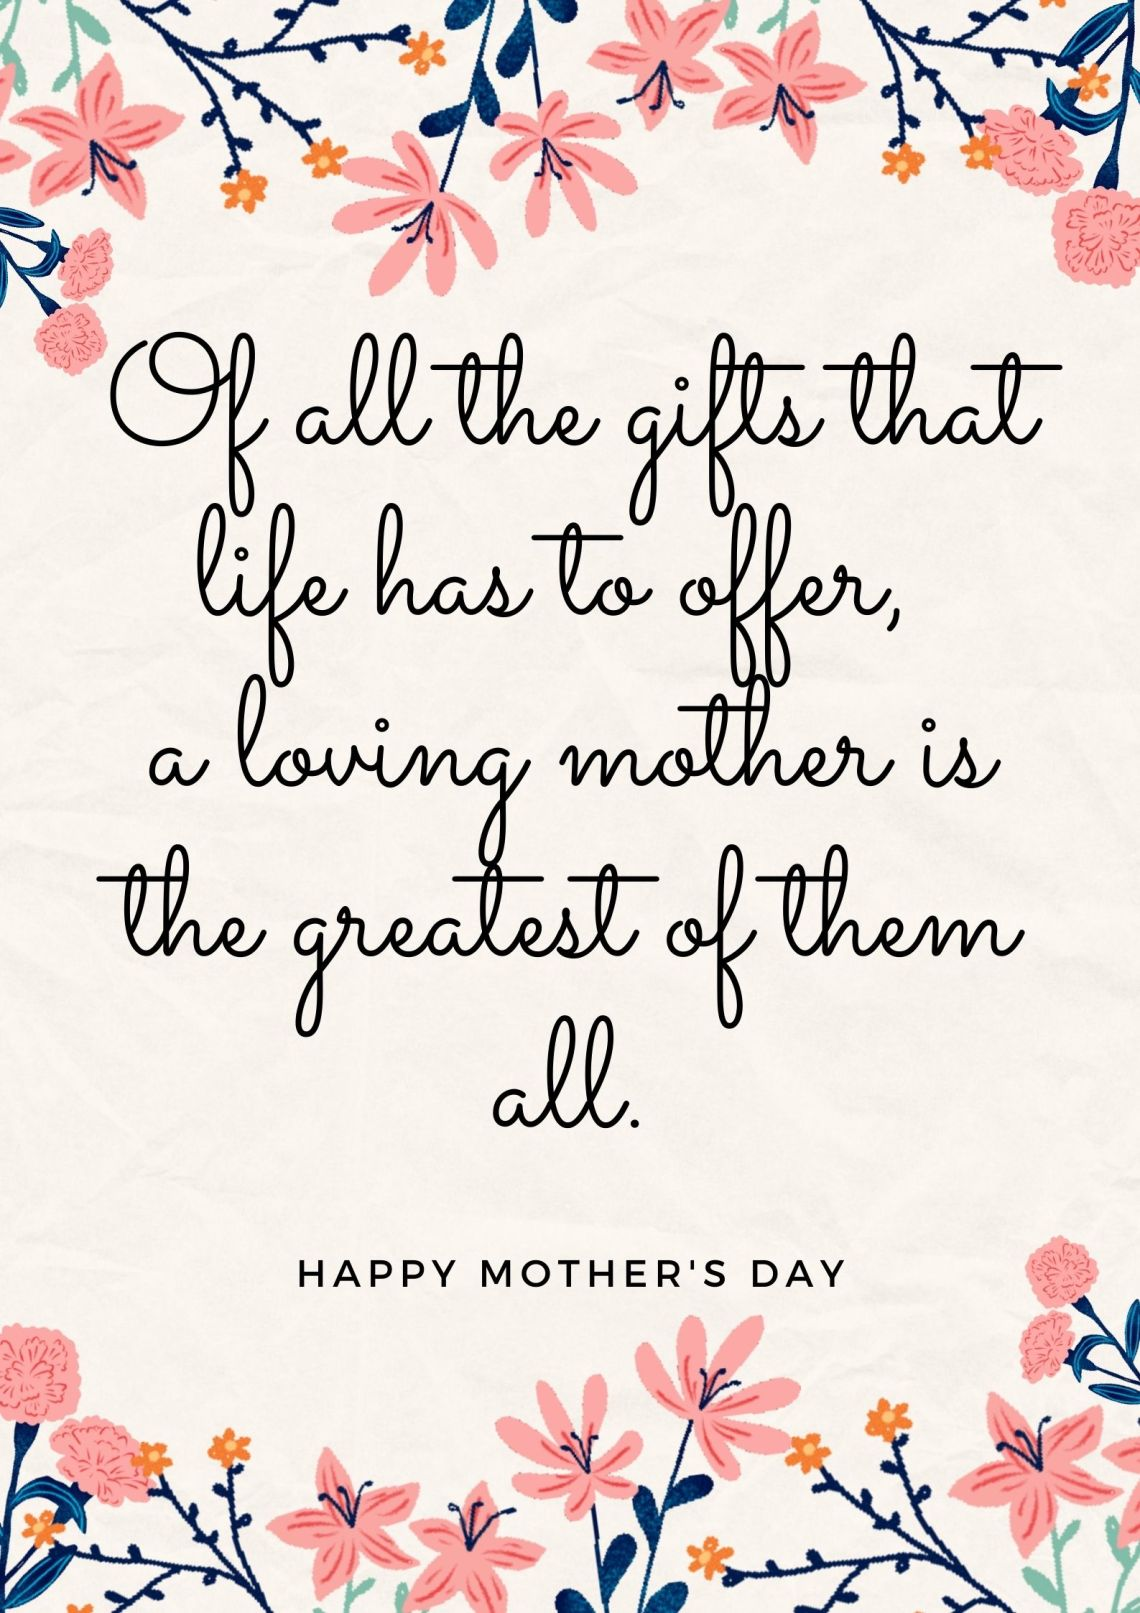 Mother's Day quotes and captions